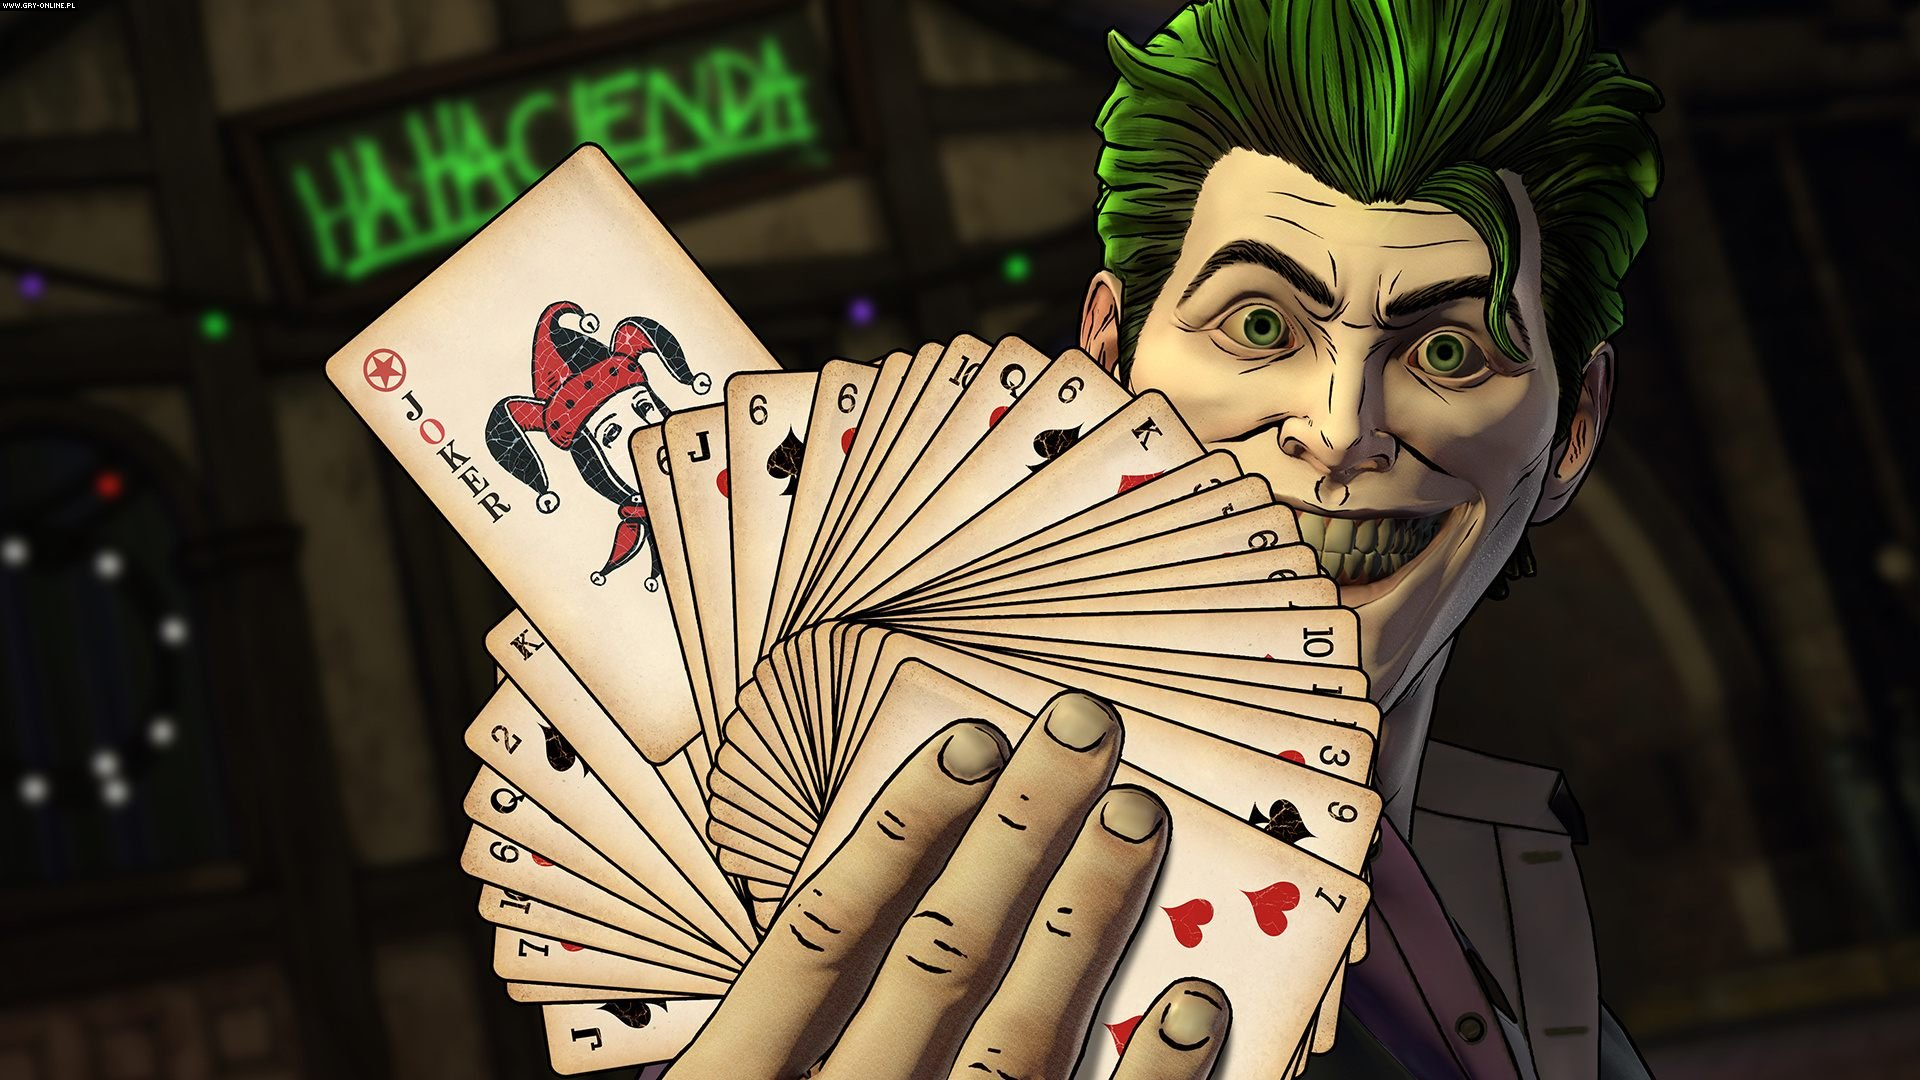 Batman: The Telltale Series - The Enemy Within PC, PS4, XONE, AND, iOS Games Image 9/18, Telltale Games